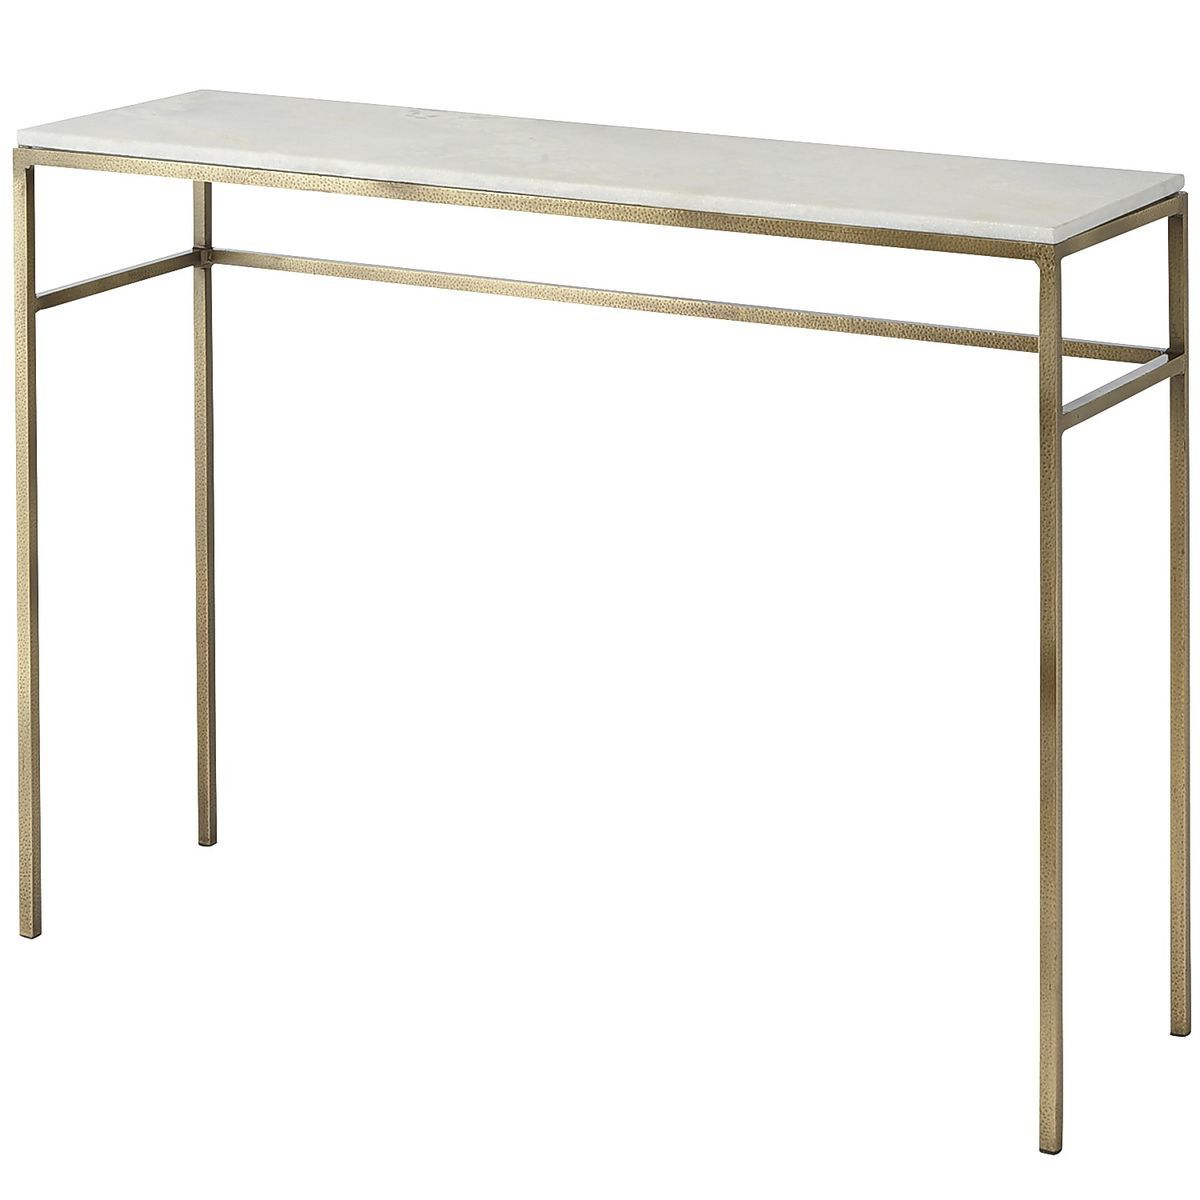 Current If You're Looking For A Way To Elevate Your Living Space, Ethel Regarding Elke Glass Console Tables With Polished Aluminum Base (View 12 of 20)